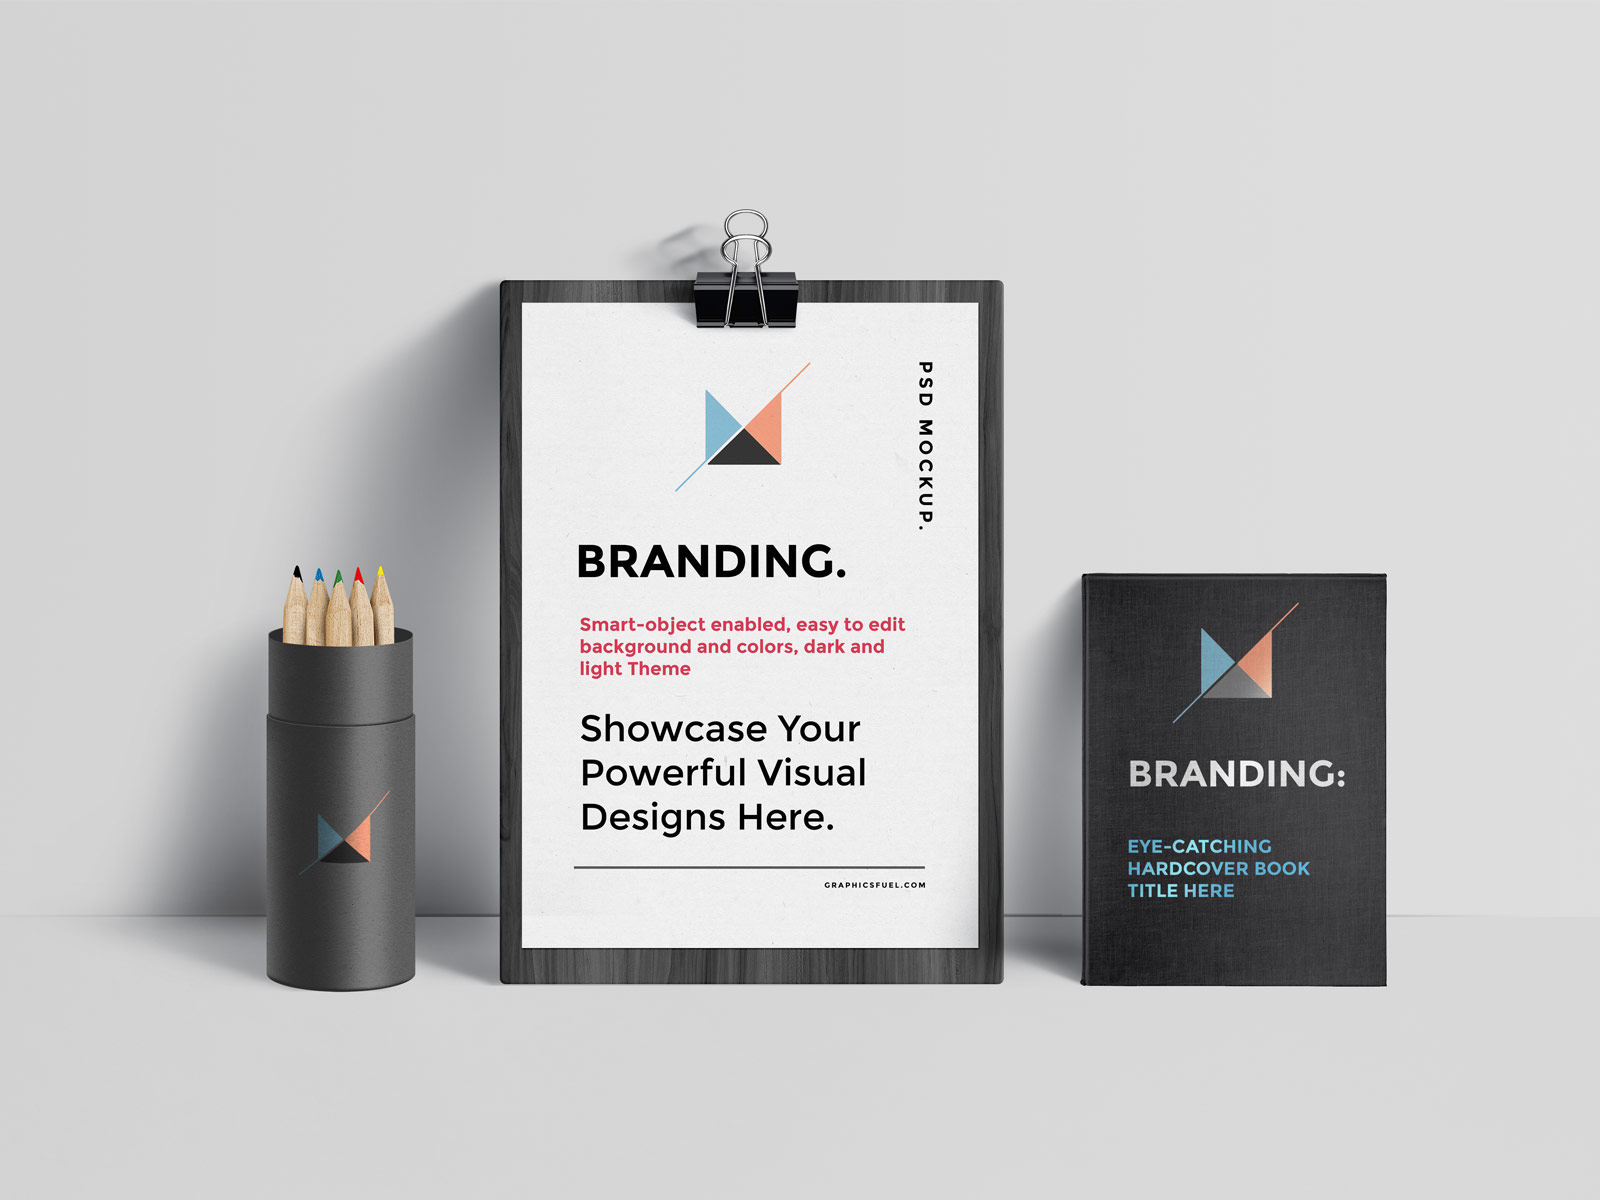 Free-A4-Paper-Clipboard,-Book-&-Pencil-Stand-Mockup-PSD-2